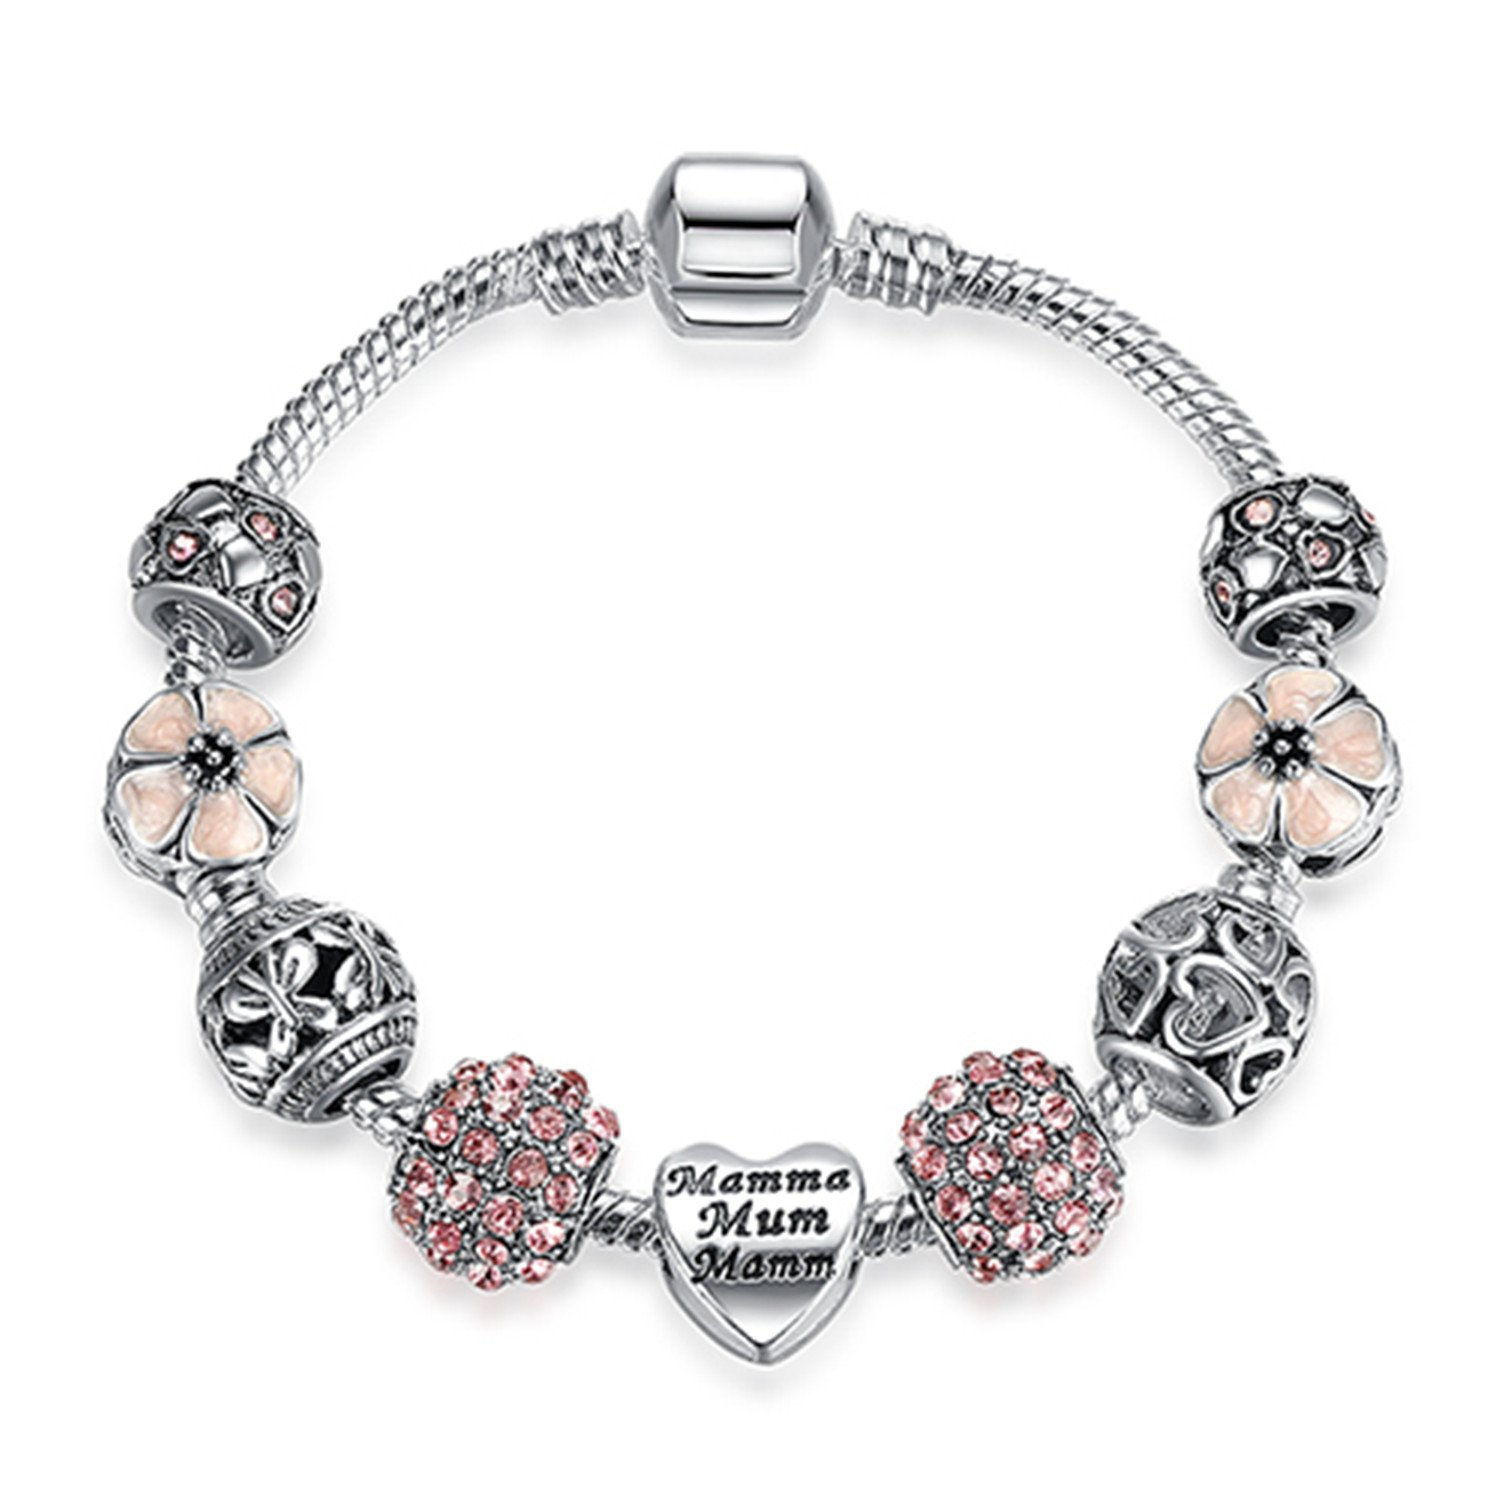 Silver 925 Crystal Four Leaf Clover Bracelet with Clear Murano Glass Beads Charm Bracelet Bangle PS3808 21cm